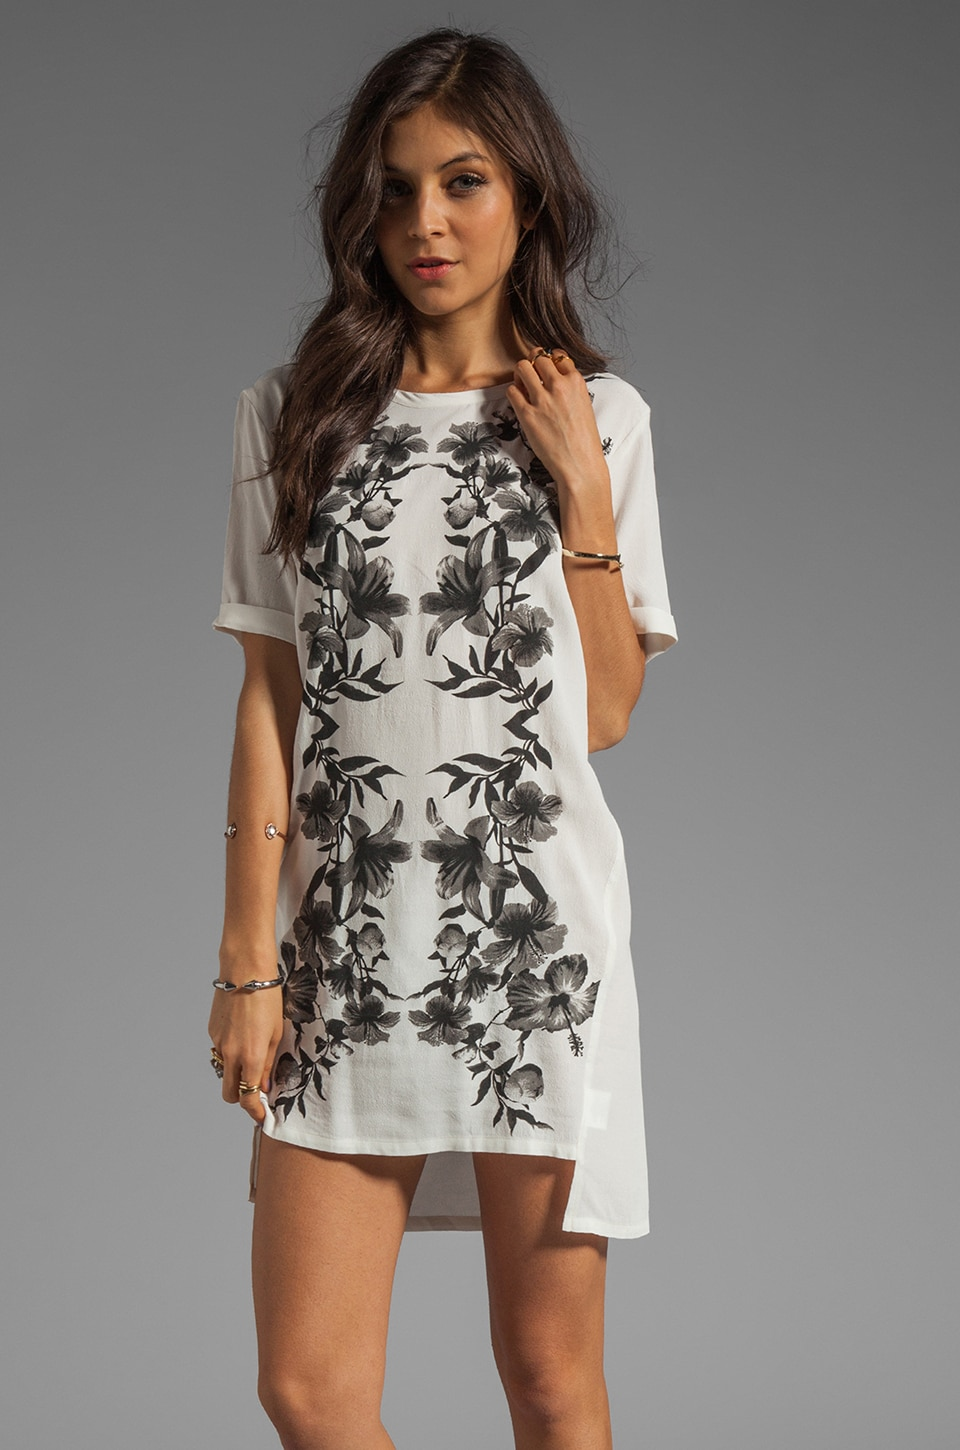 STYLESTALKER Parallel Universe Dress in Black/White Floral